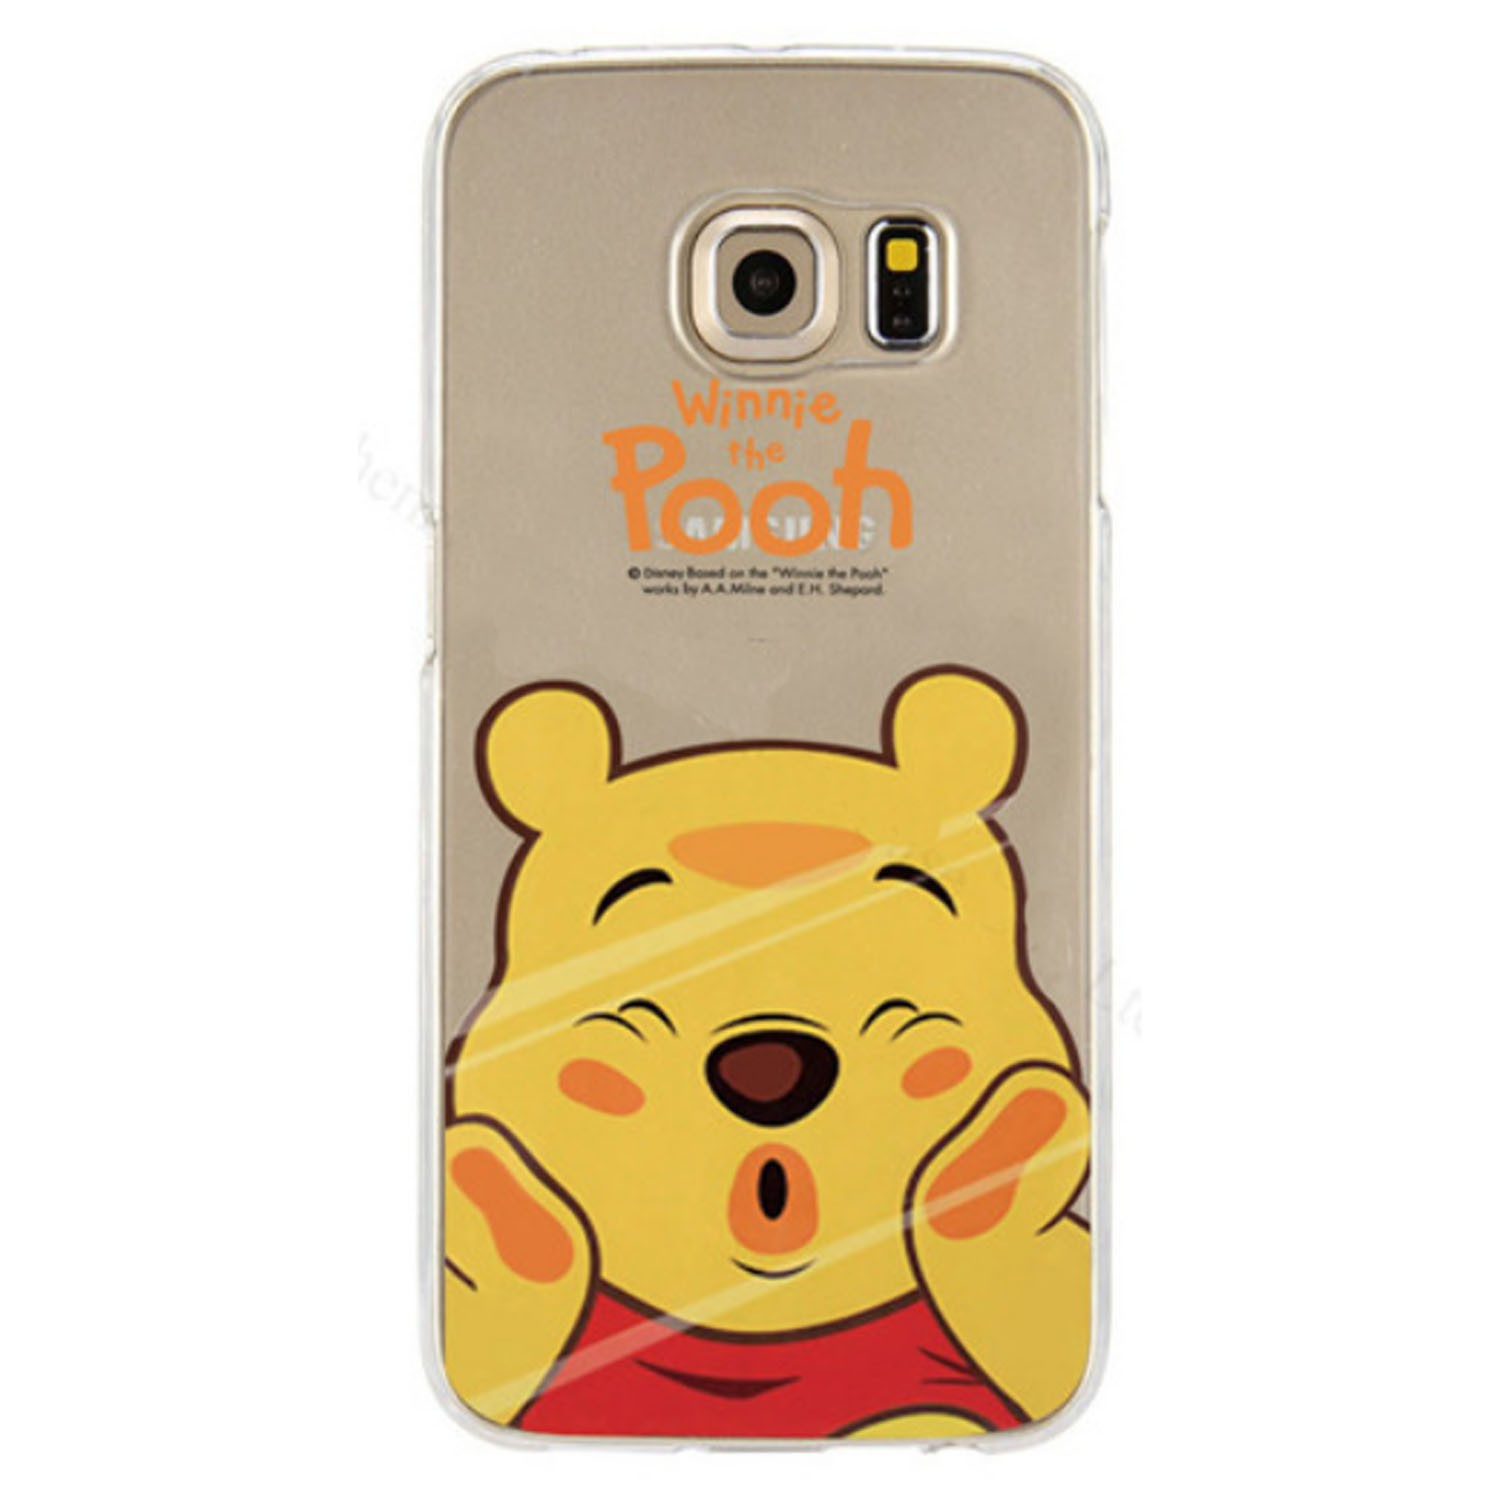 Kritzel Case Collection Galaxy S6 - Winnie the Pooh